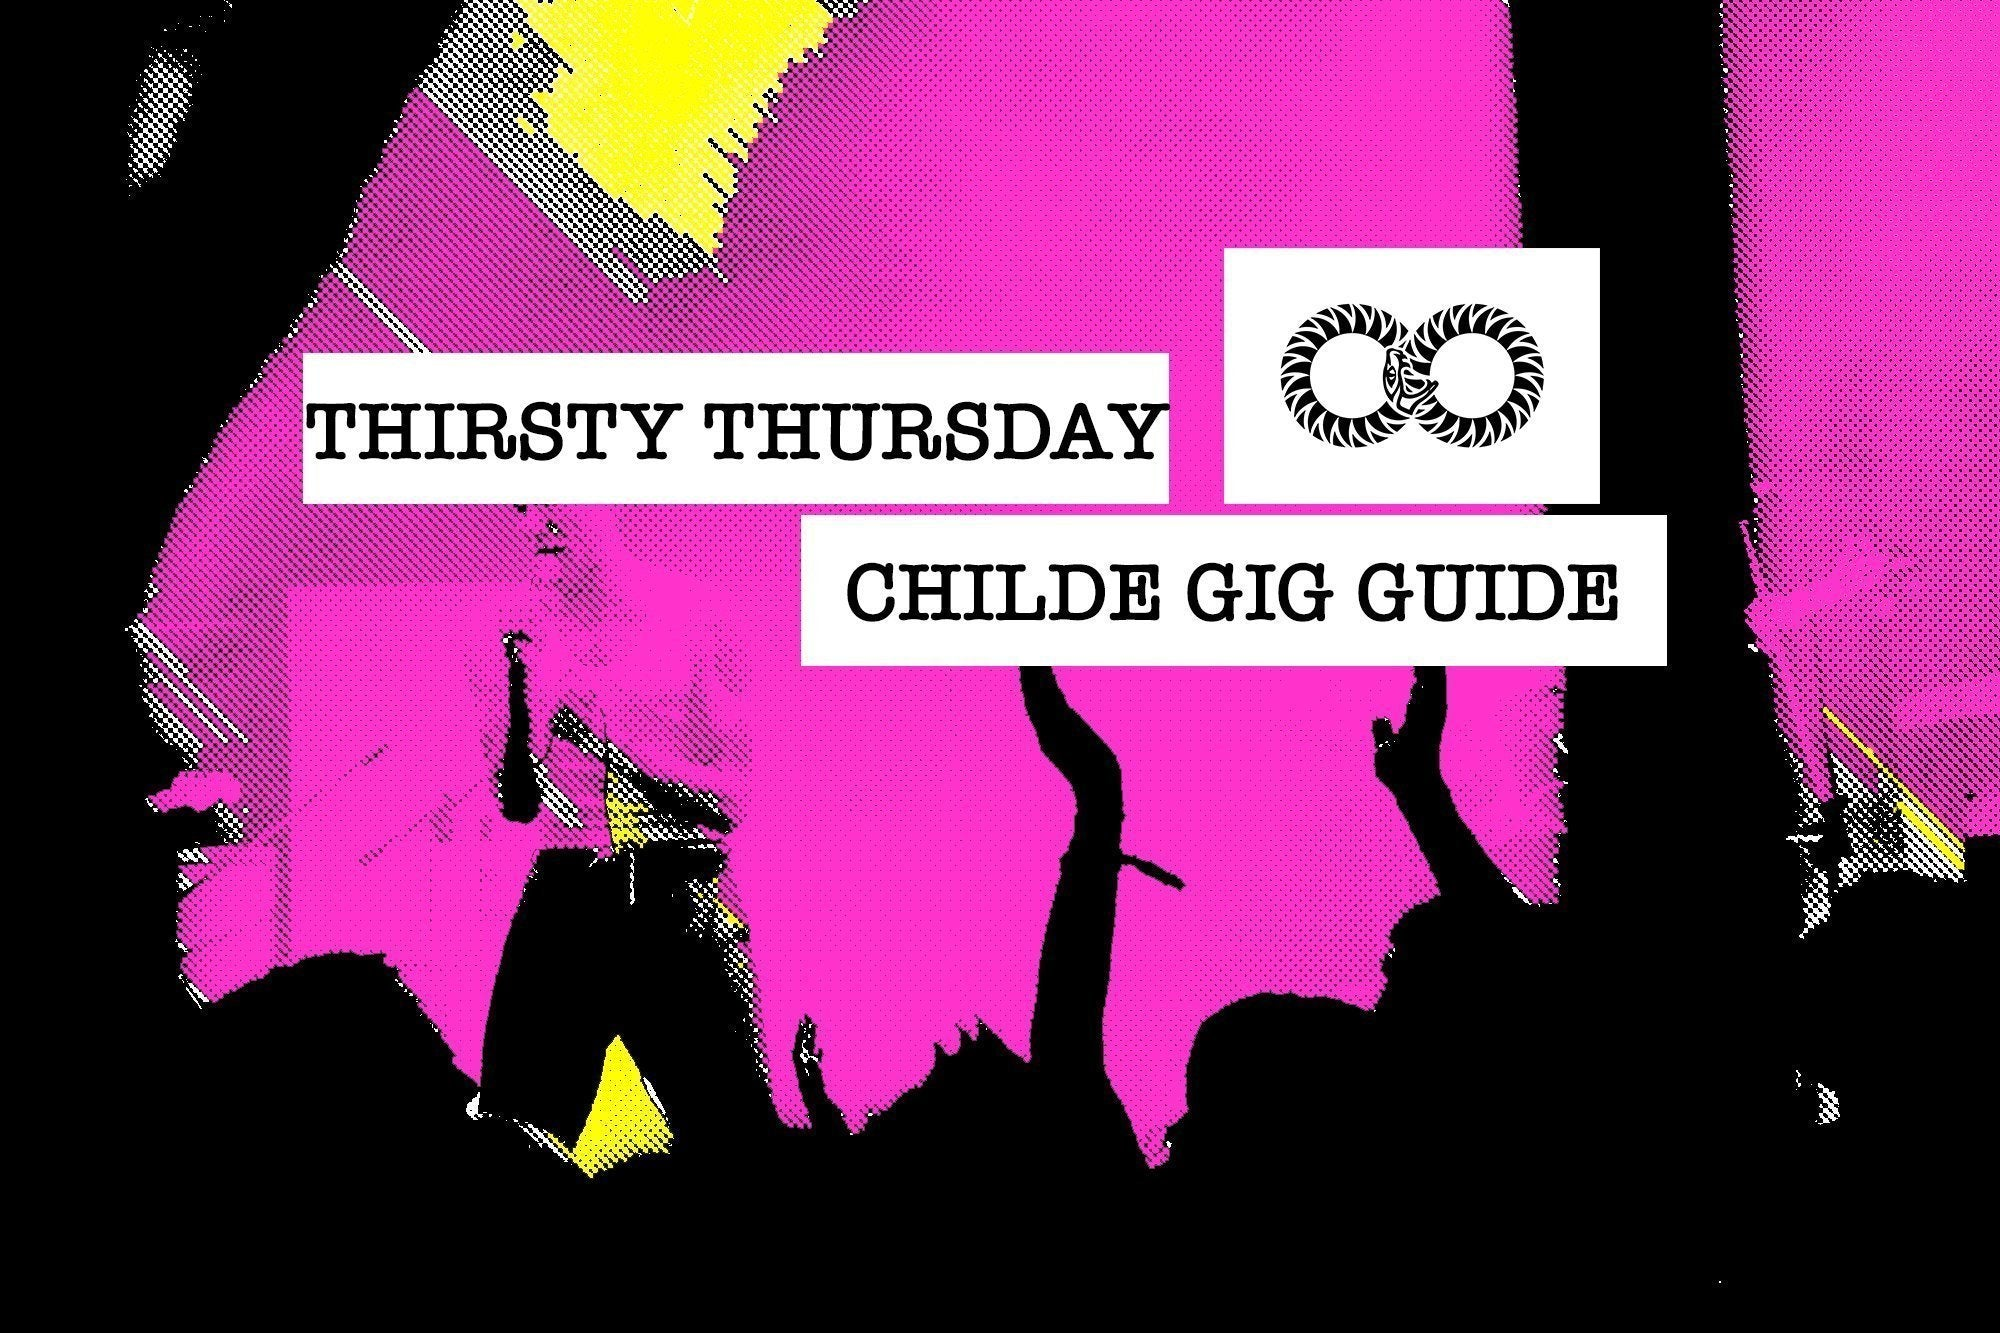 Thirsty Thursday | CHILDE GIG GUIDE